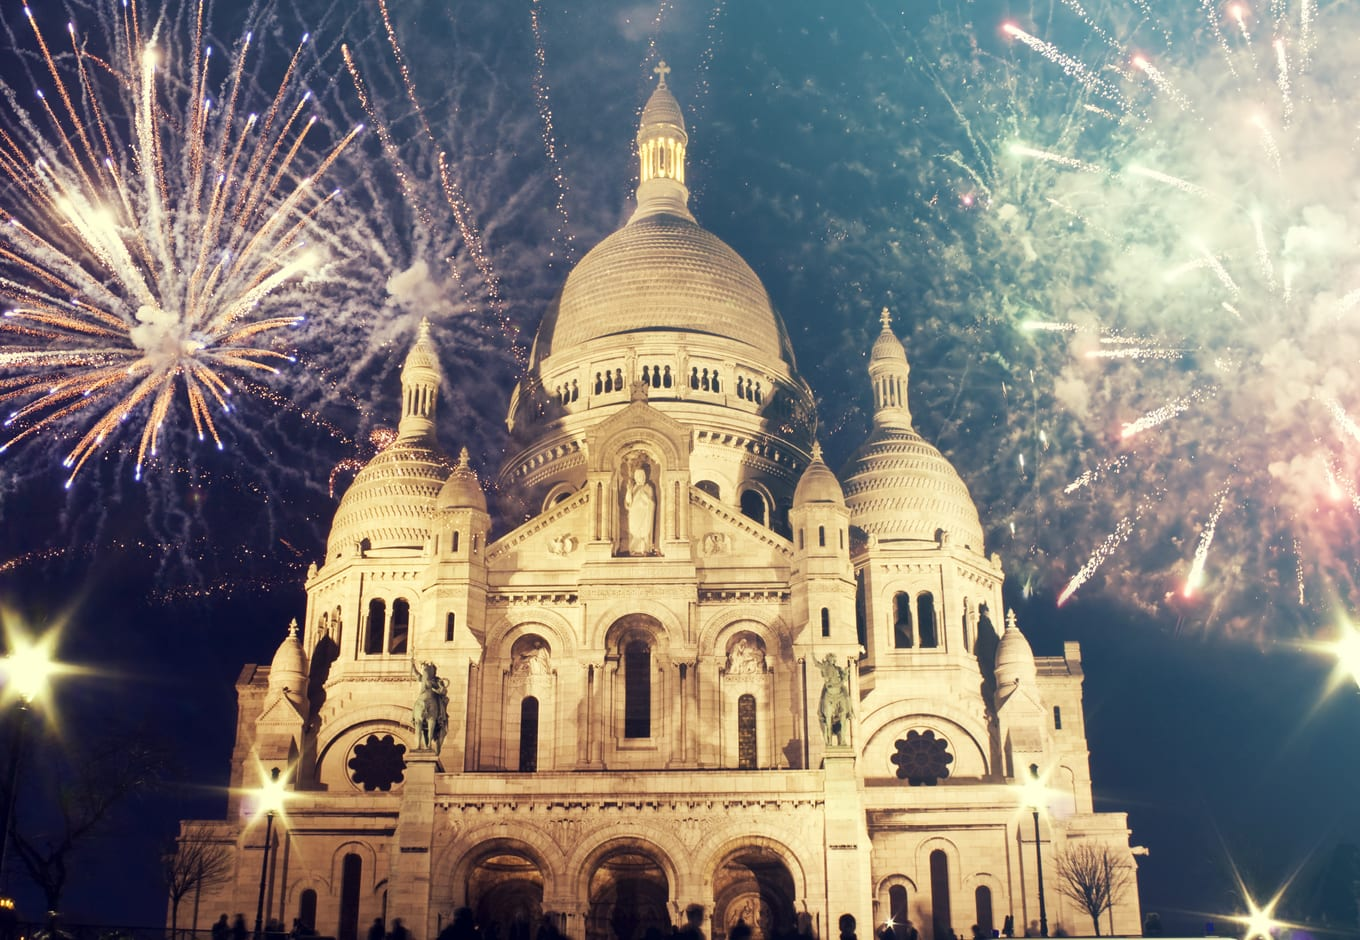 The Sacre Coeur church with fireworks, during the New Year in Paris, France